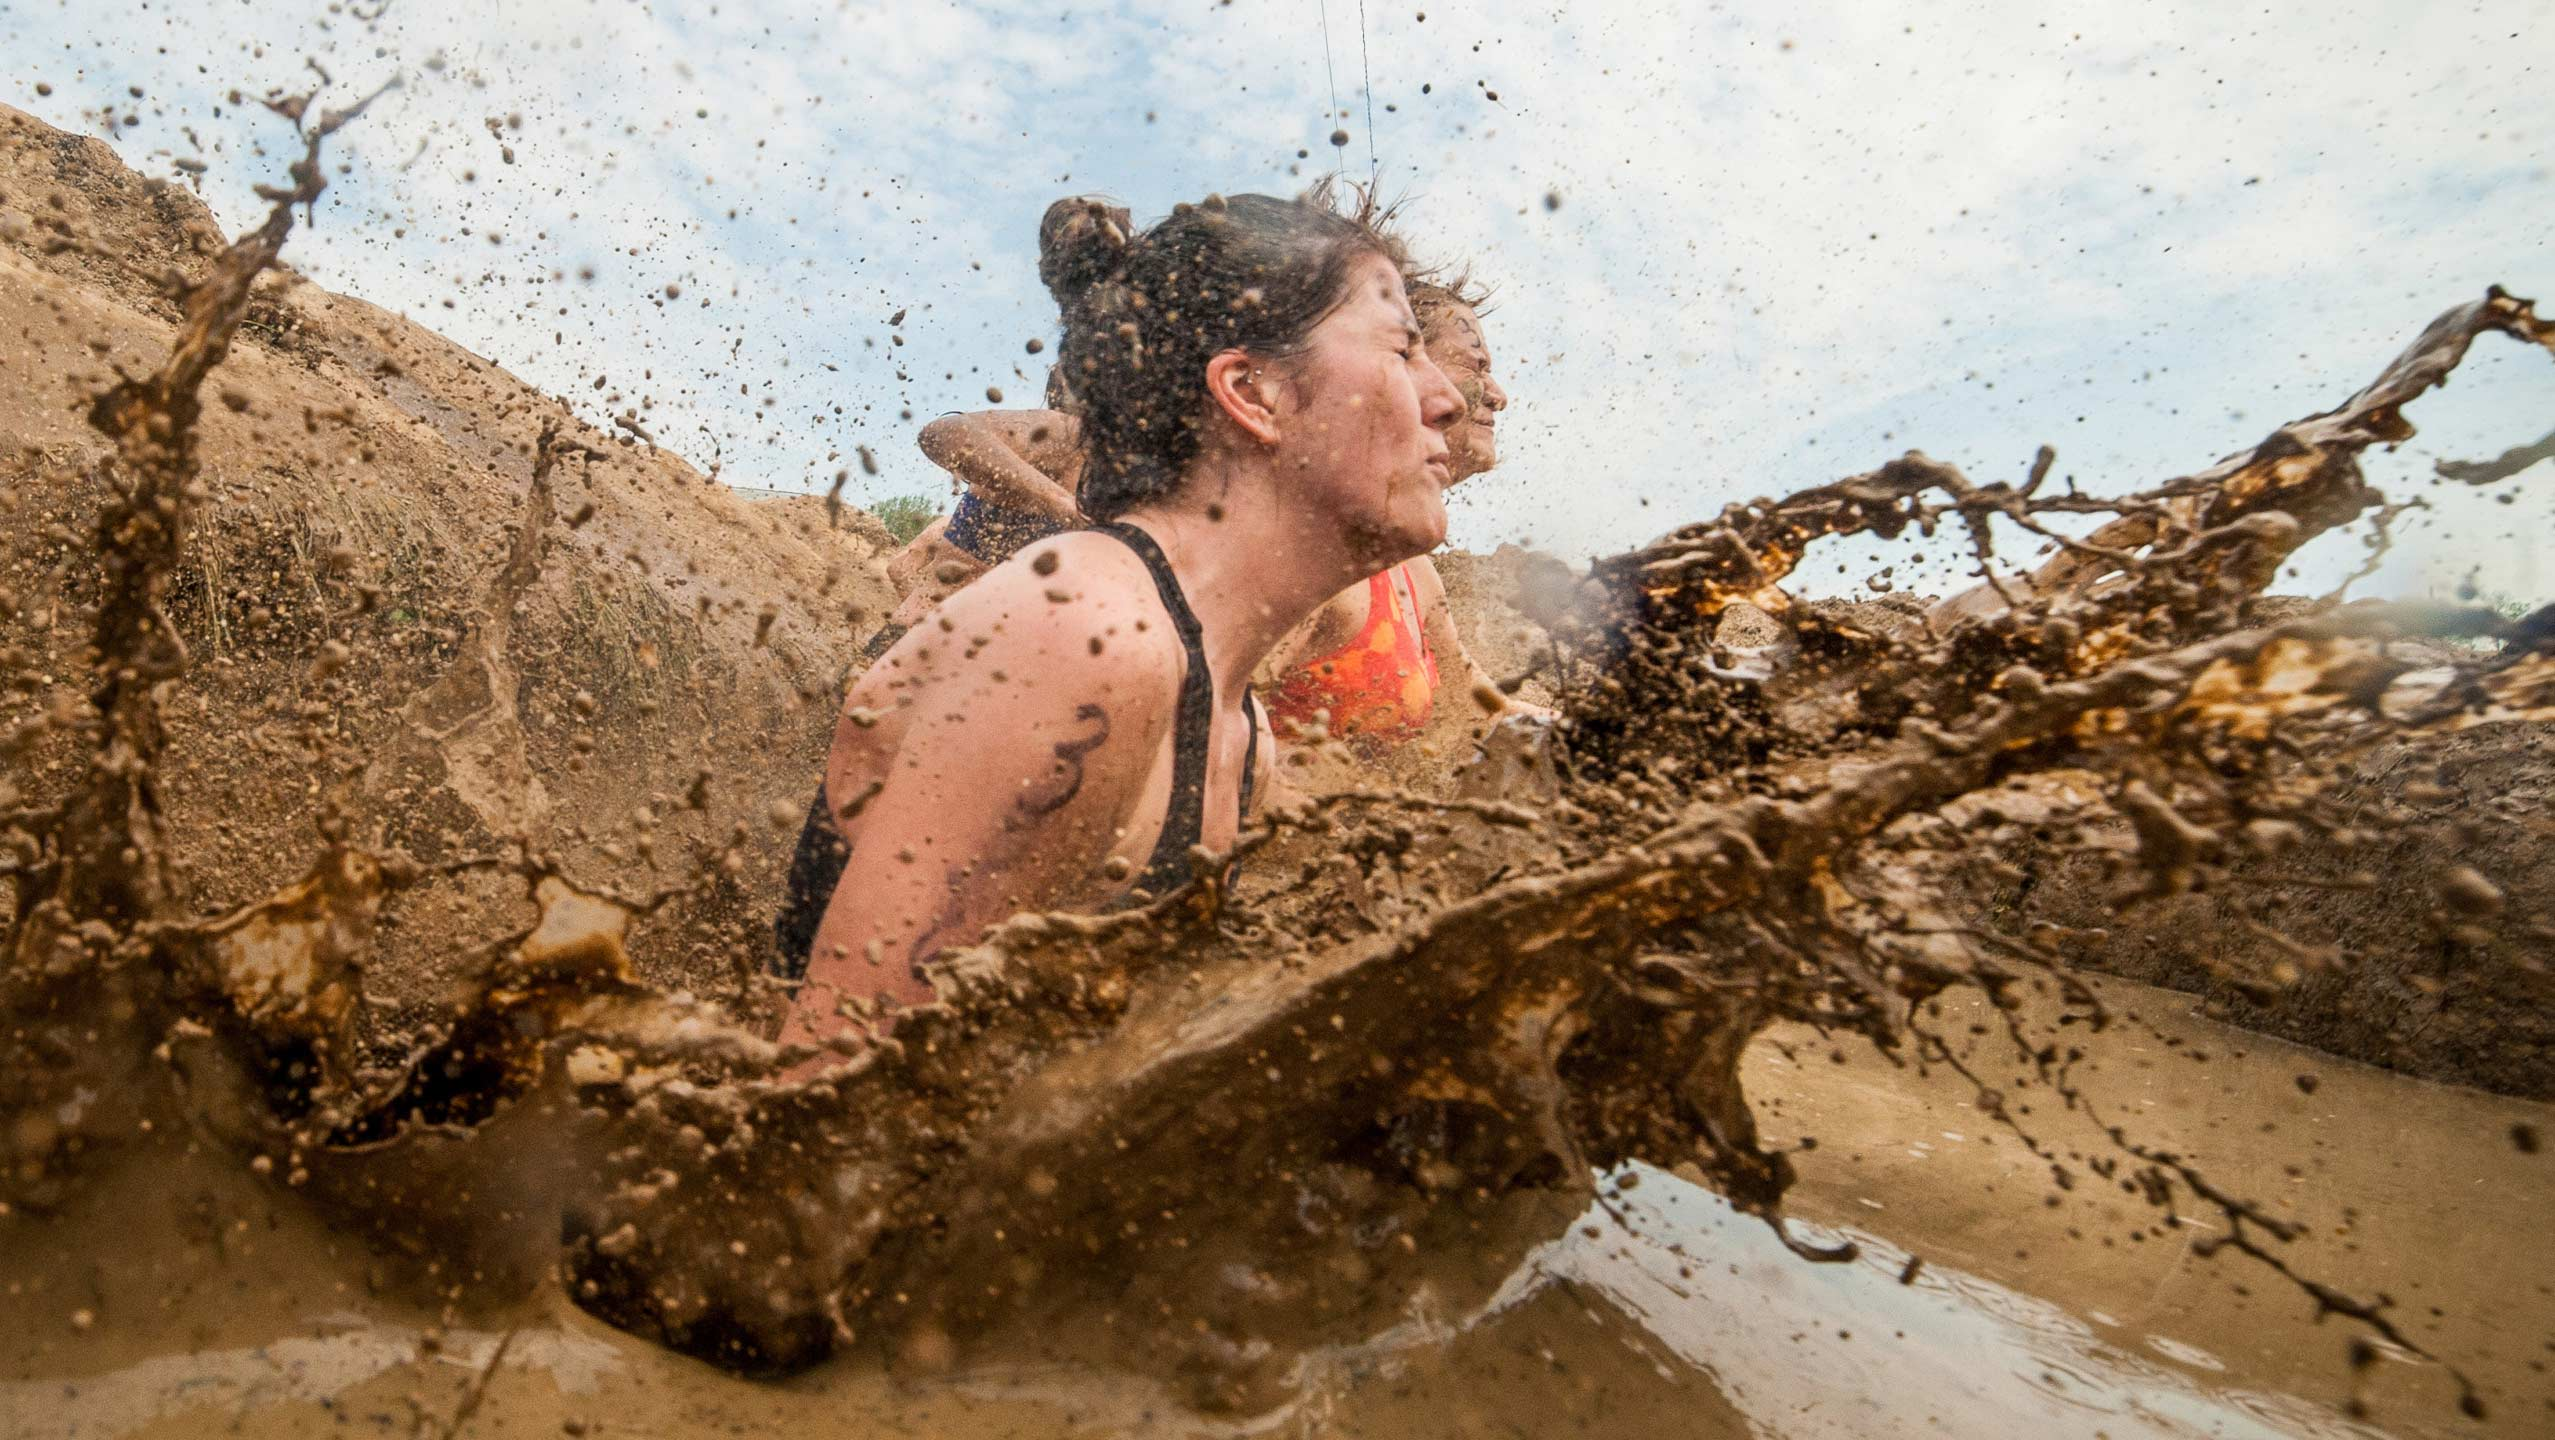 Tough Mudder combines distances with obstacles and a whole lot of mud